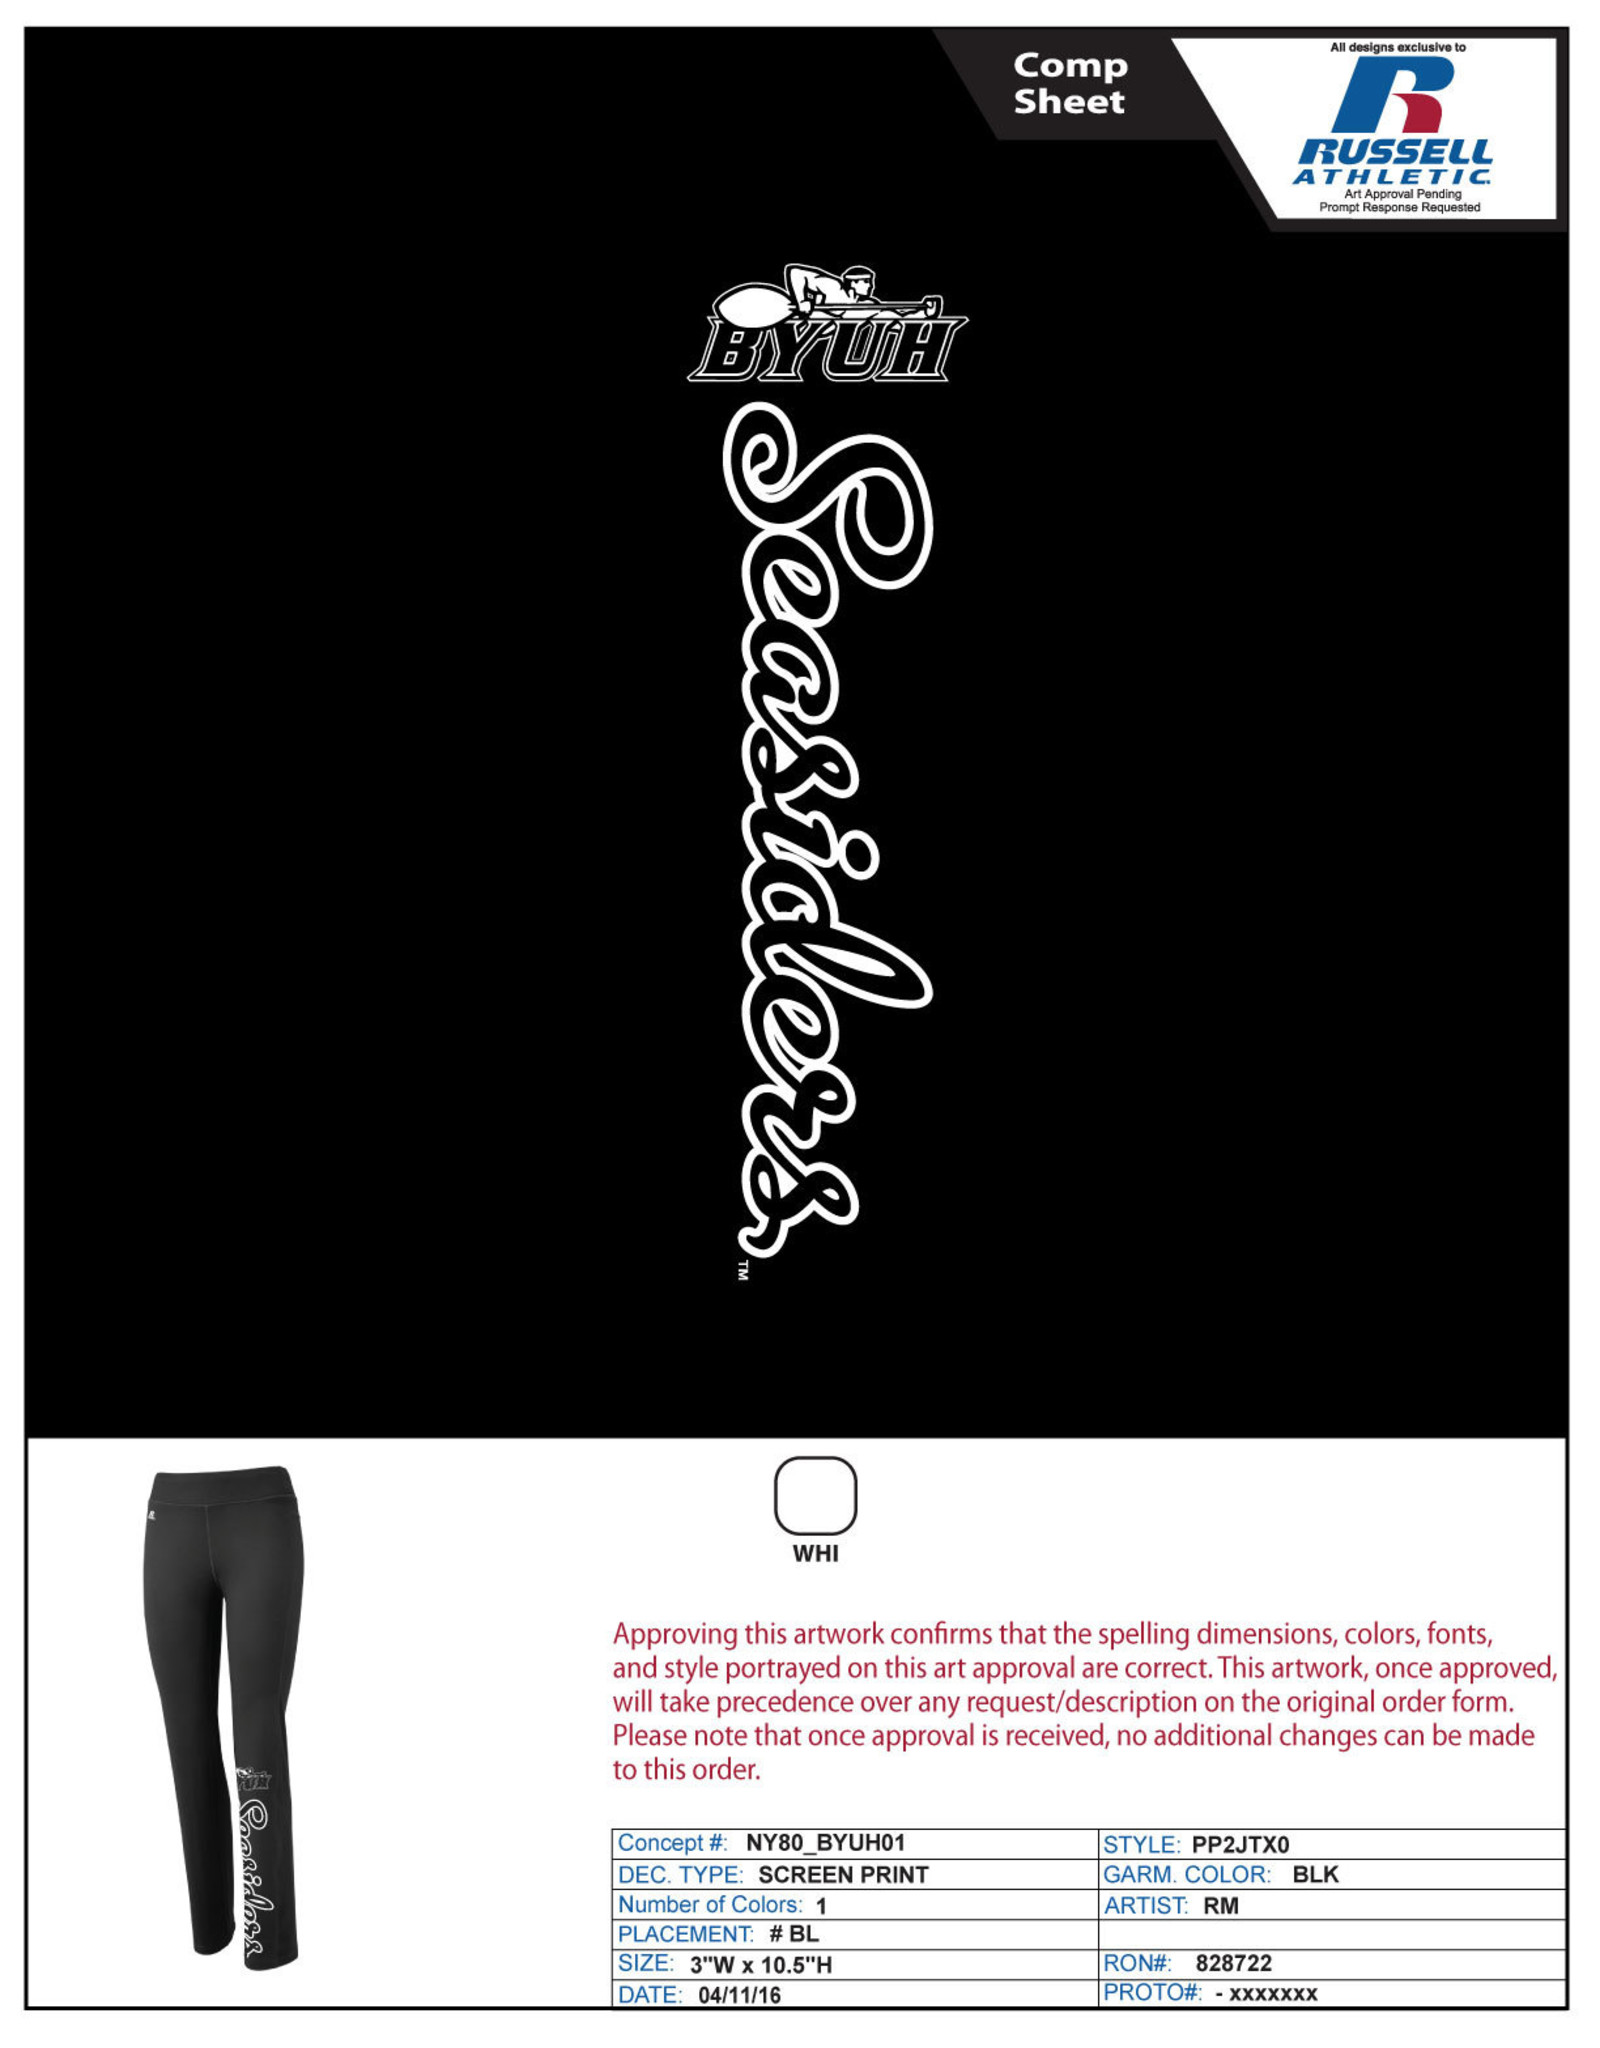 Clearance - BYUH Seasiders SP16 Yoga Pants